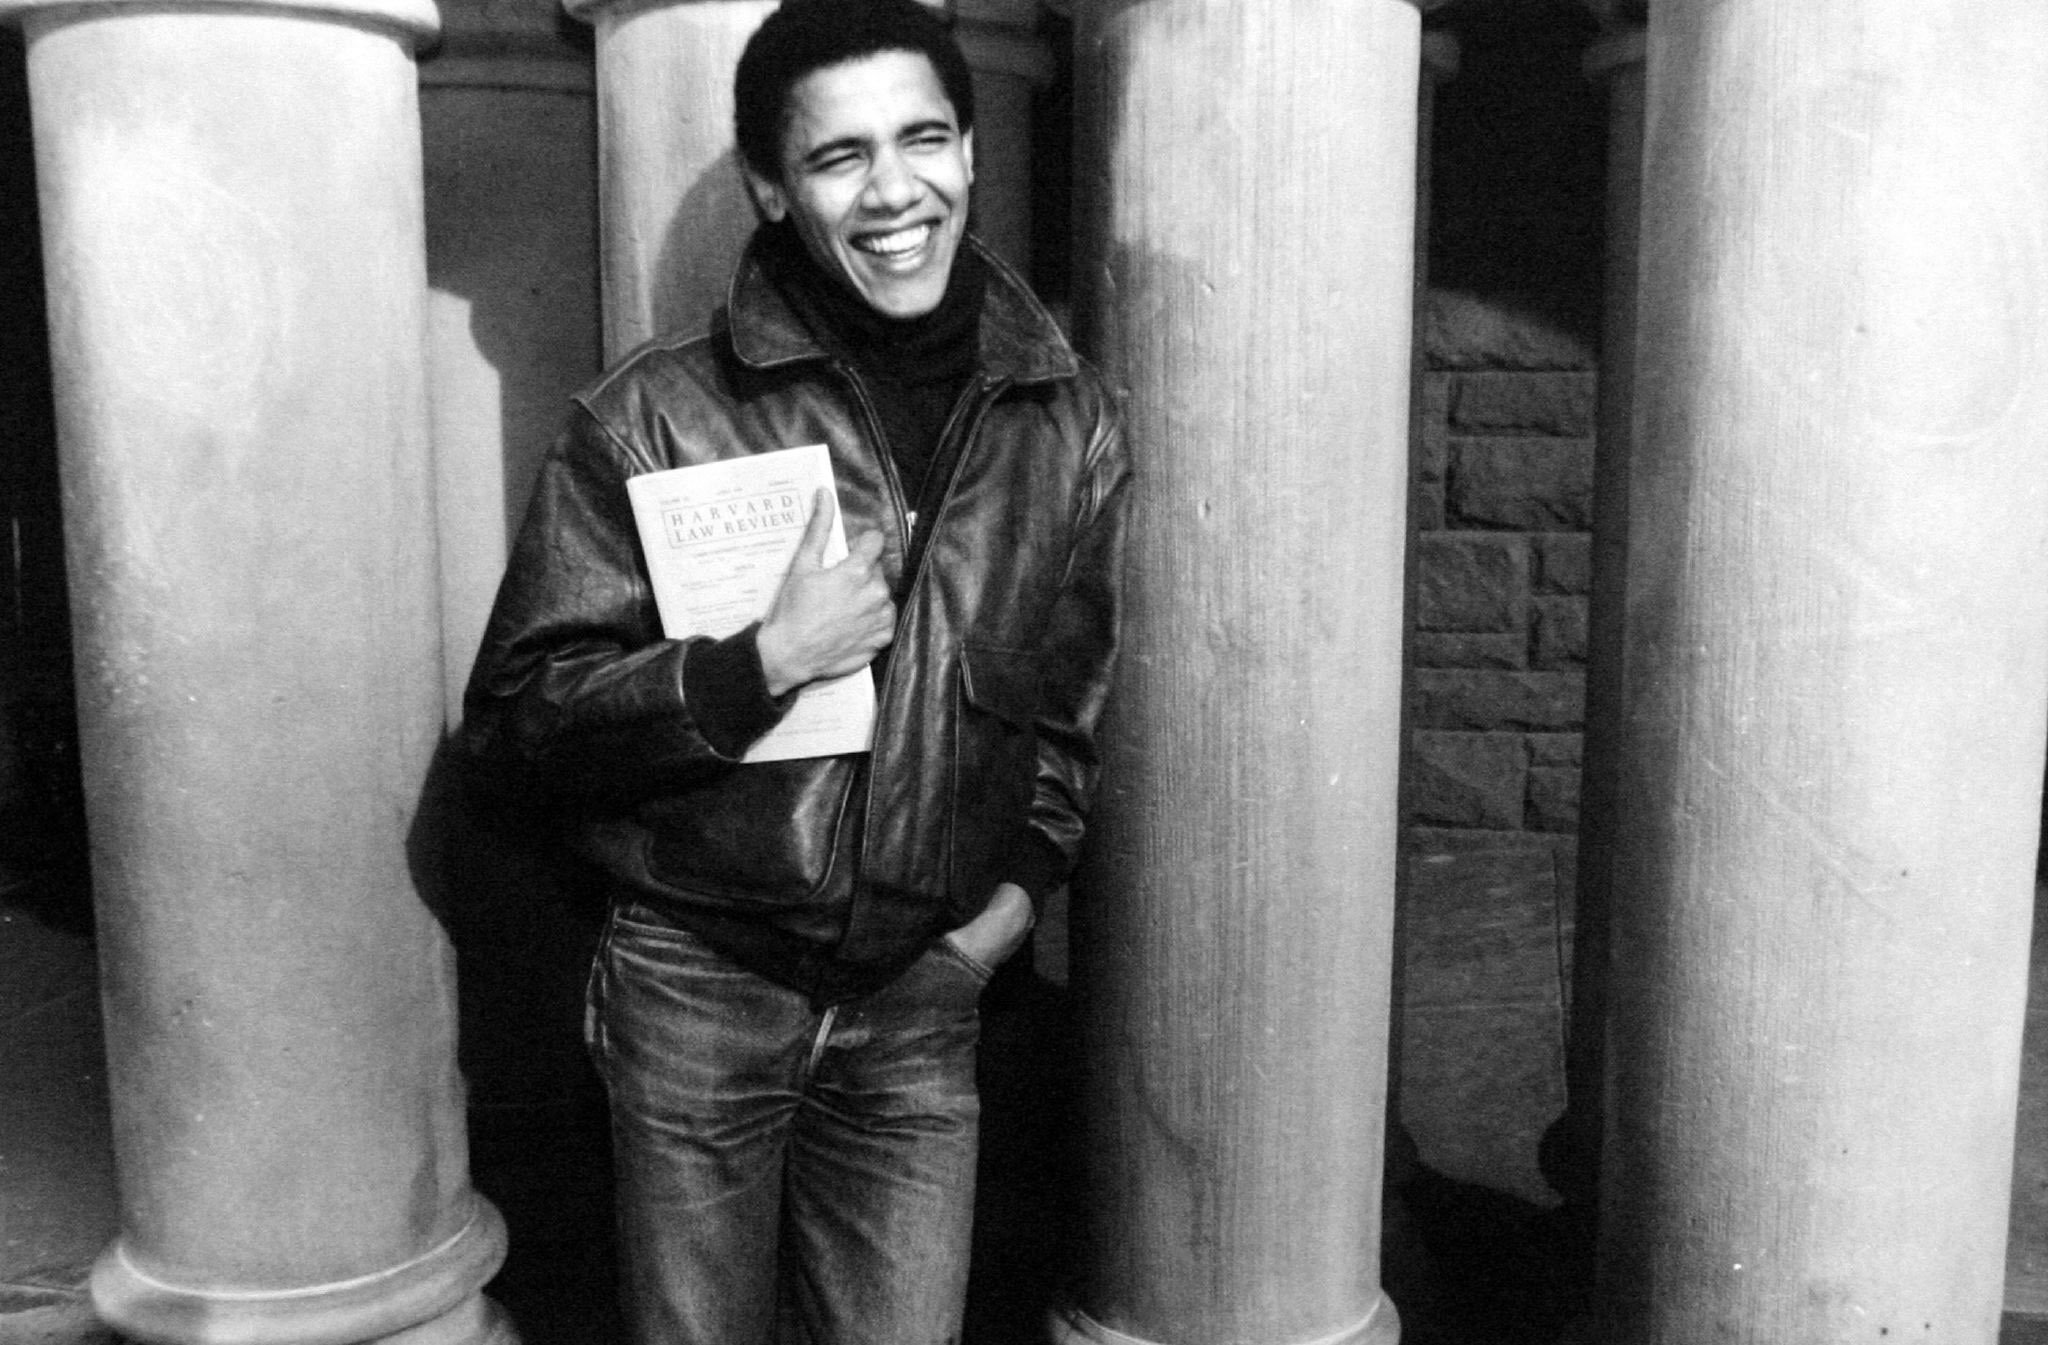 Barack Obama as student at Harvard university, c. 1992 l Source: Getty Images